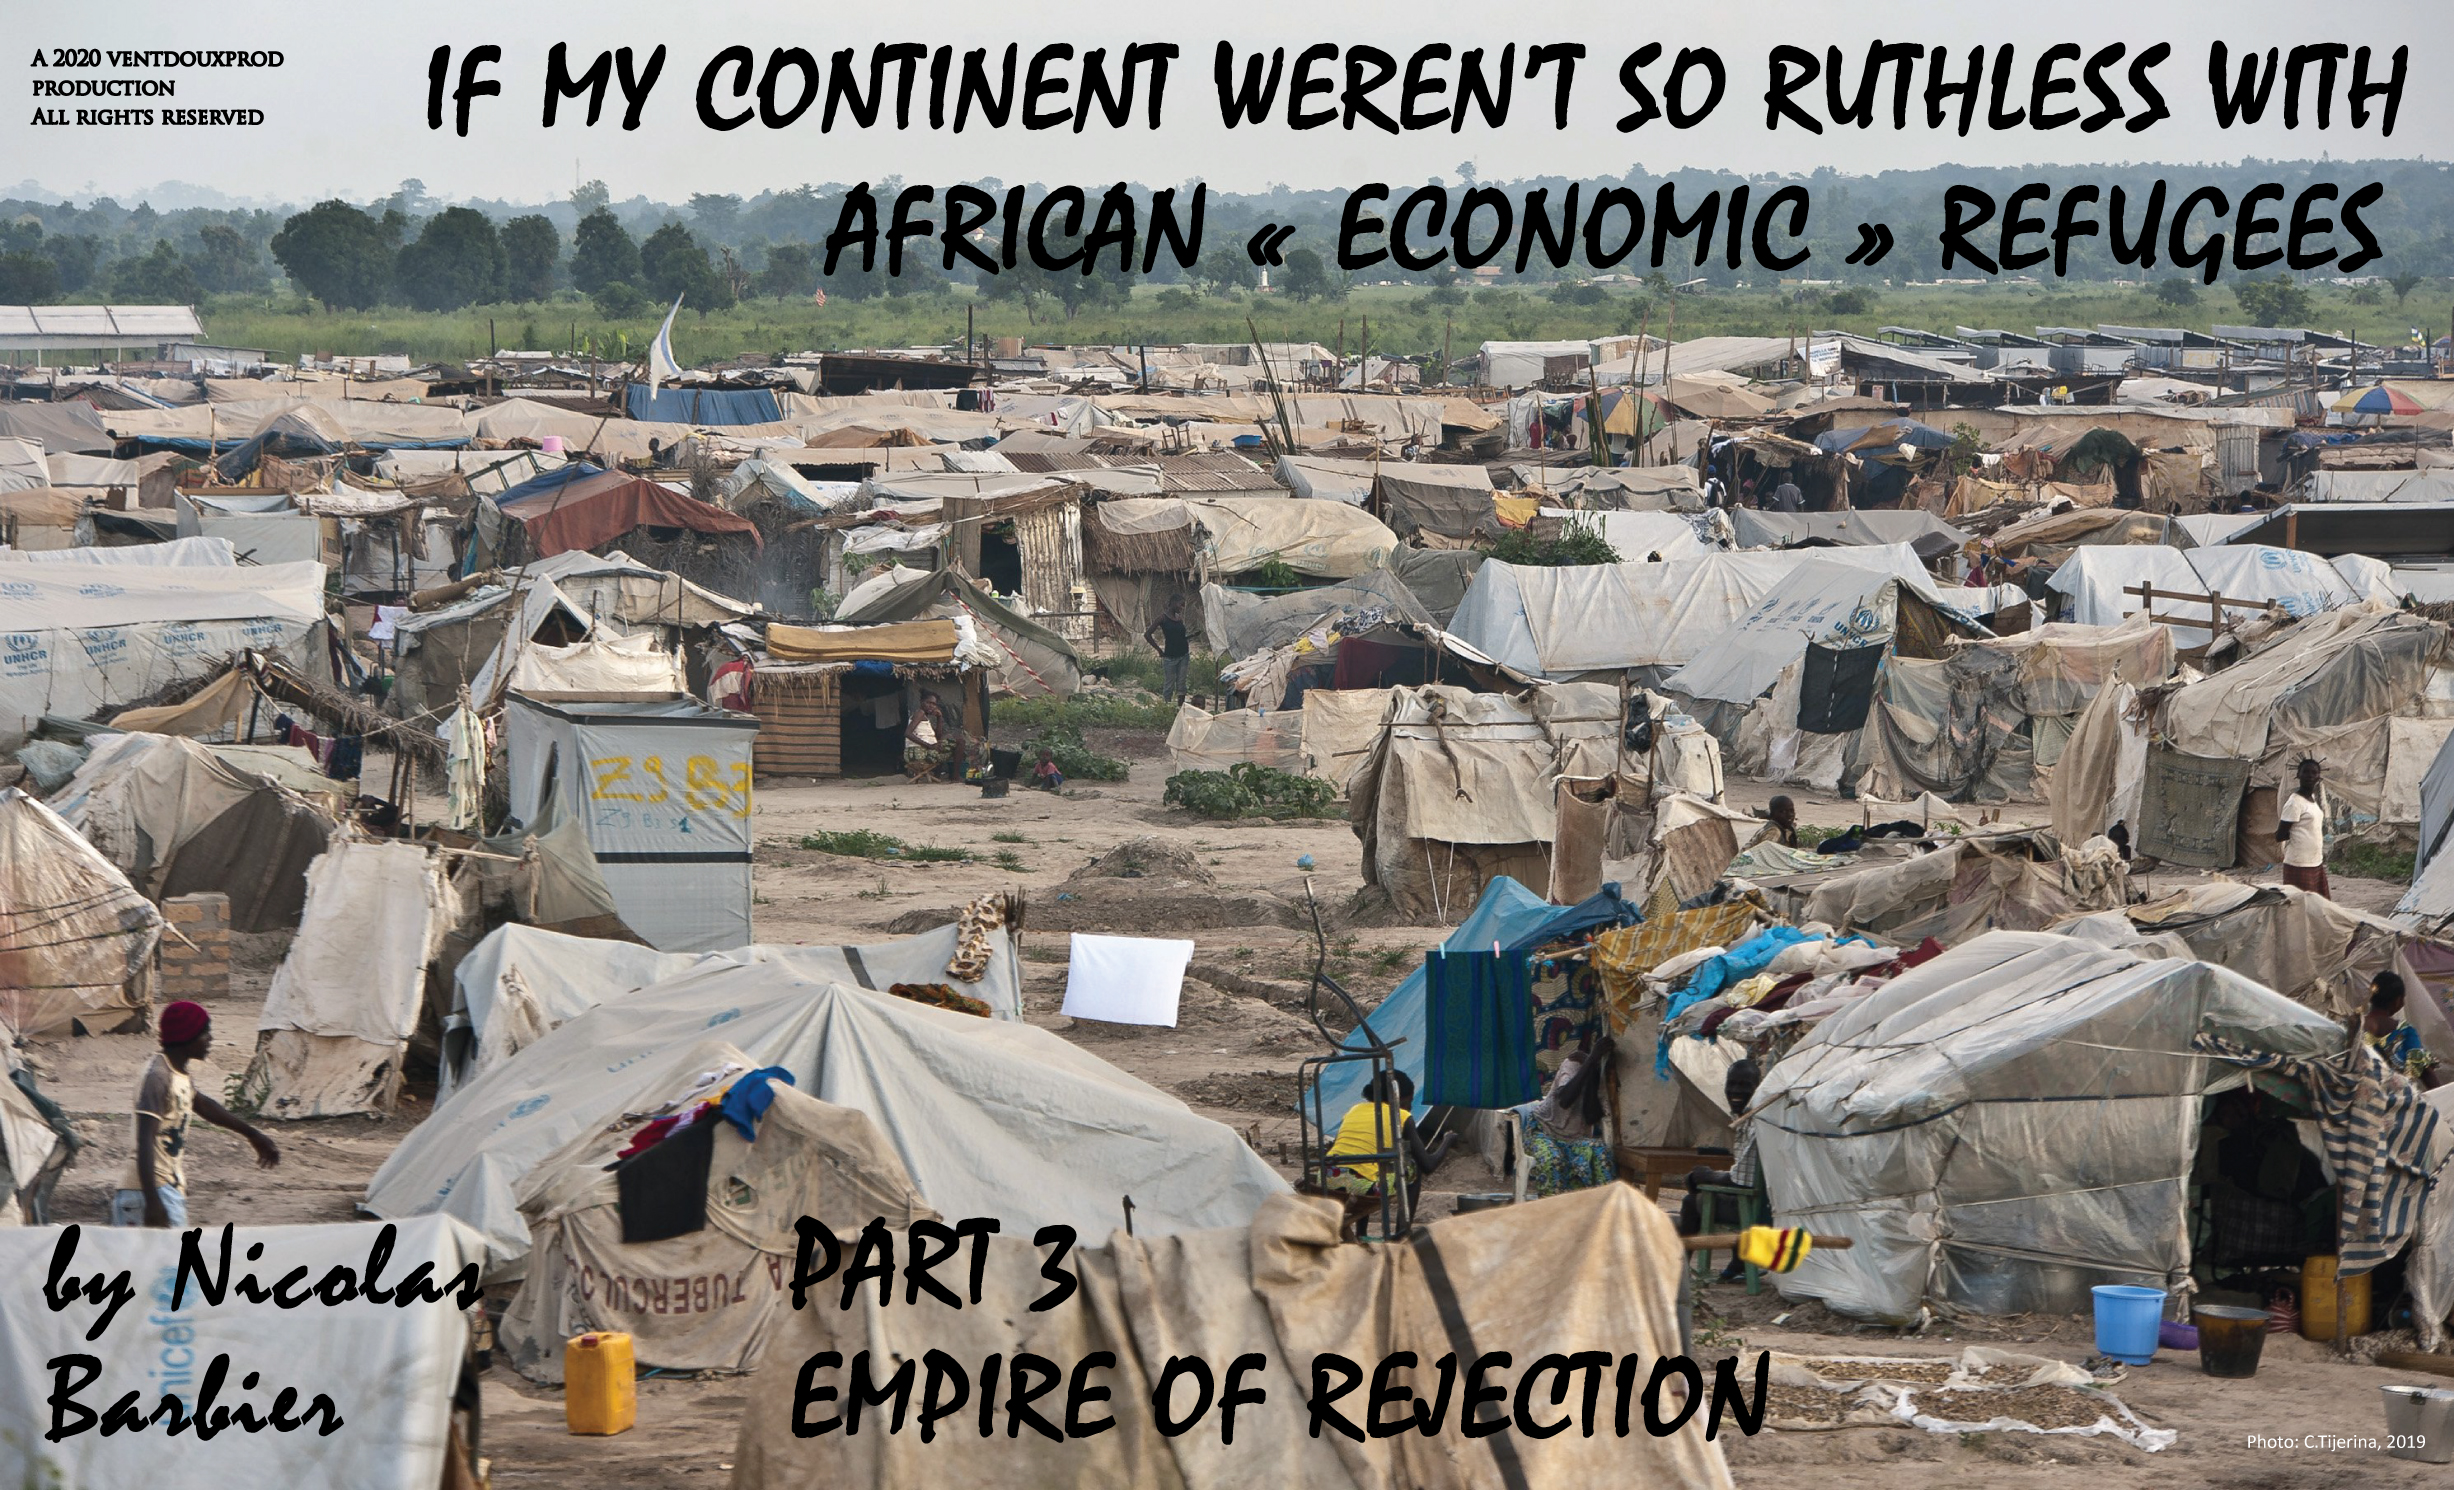 ventdouxprod 2020 nicolas barbier if my continent weren't so ruthless with african economic refugees empire of rejection